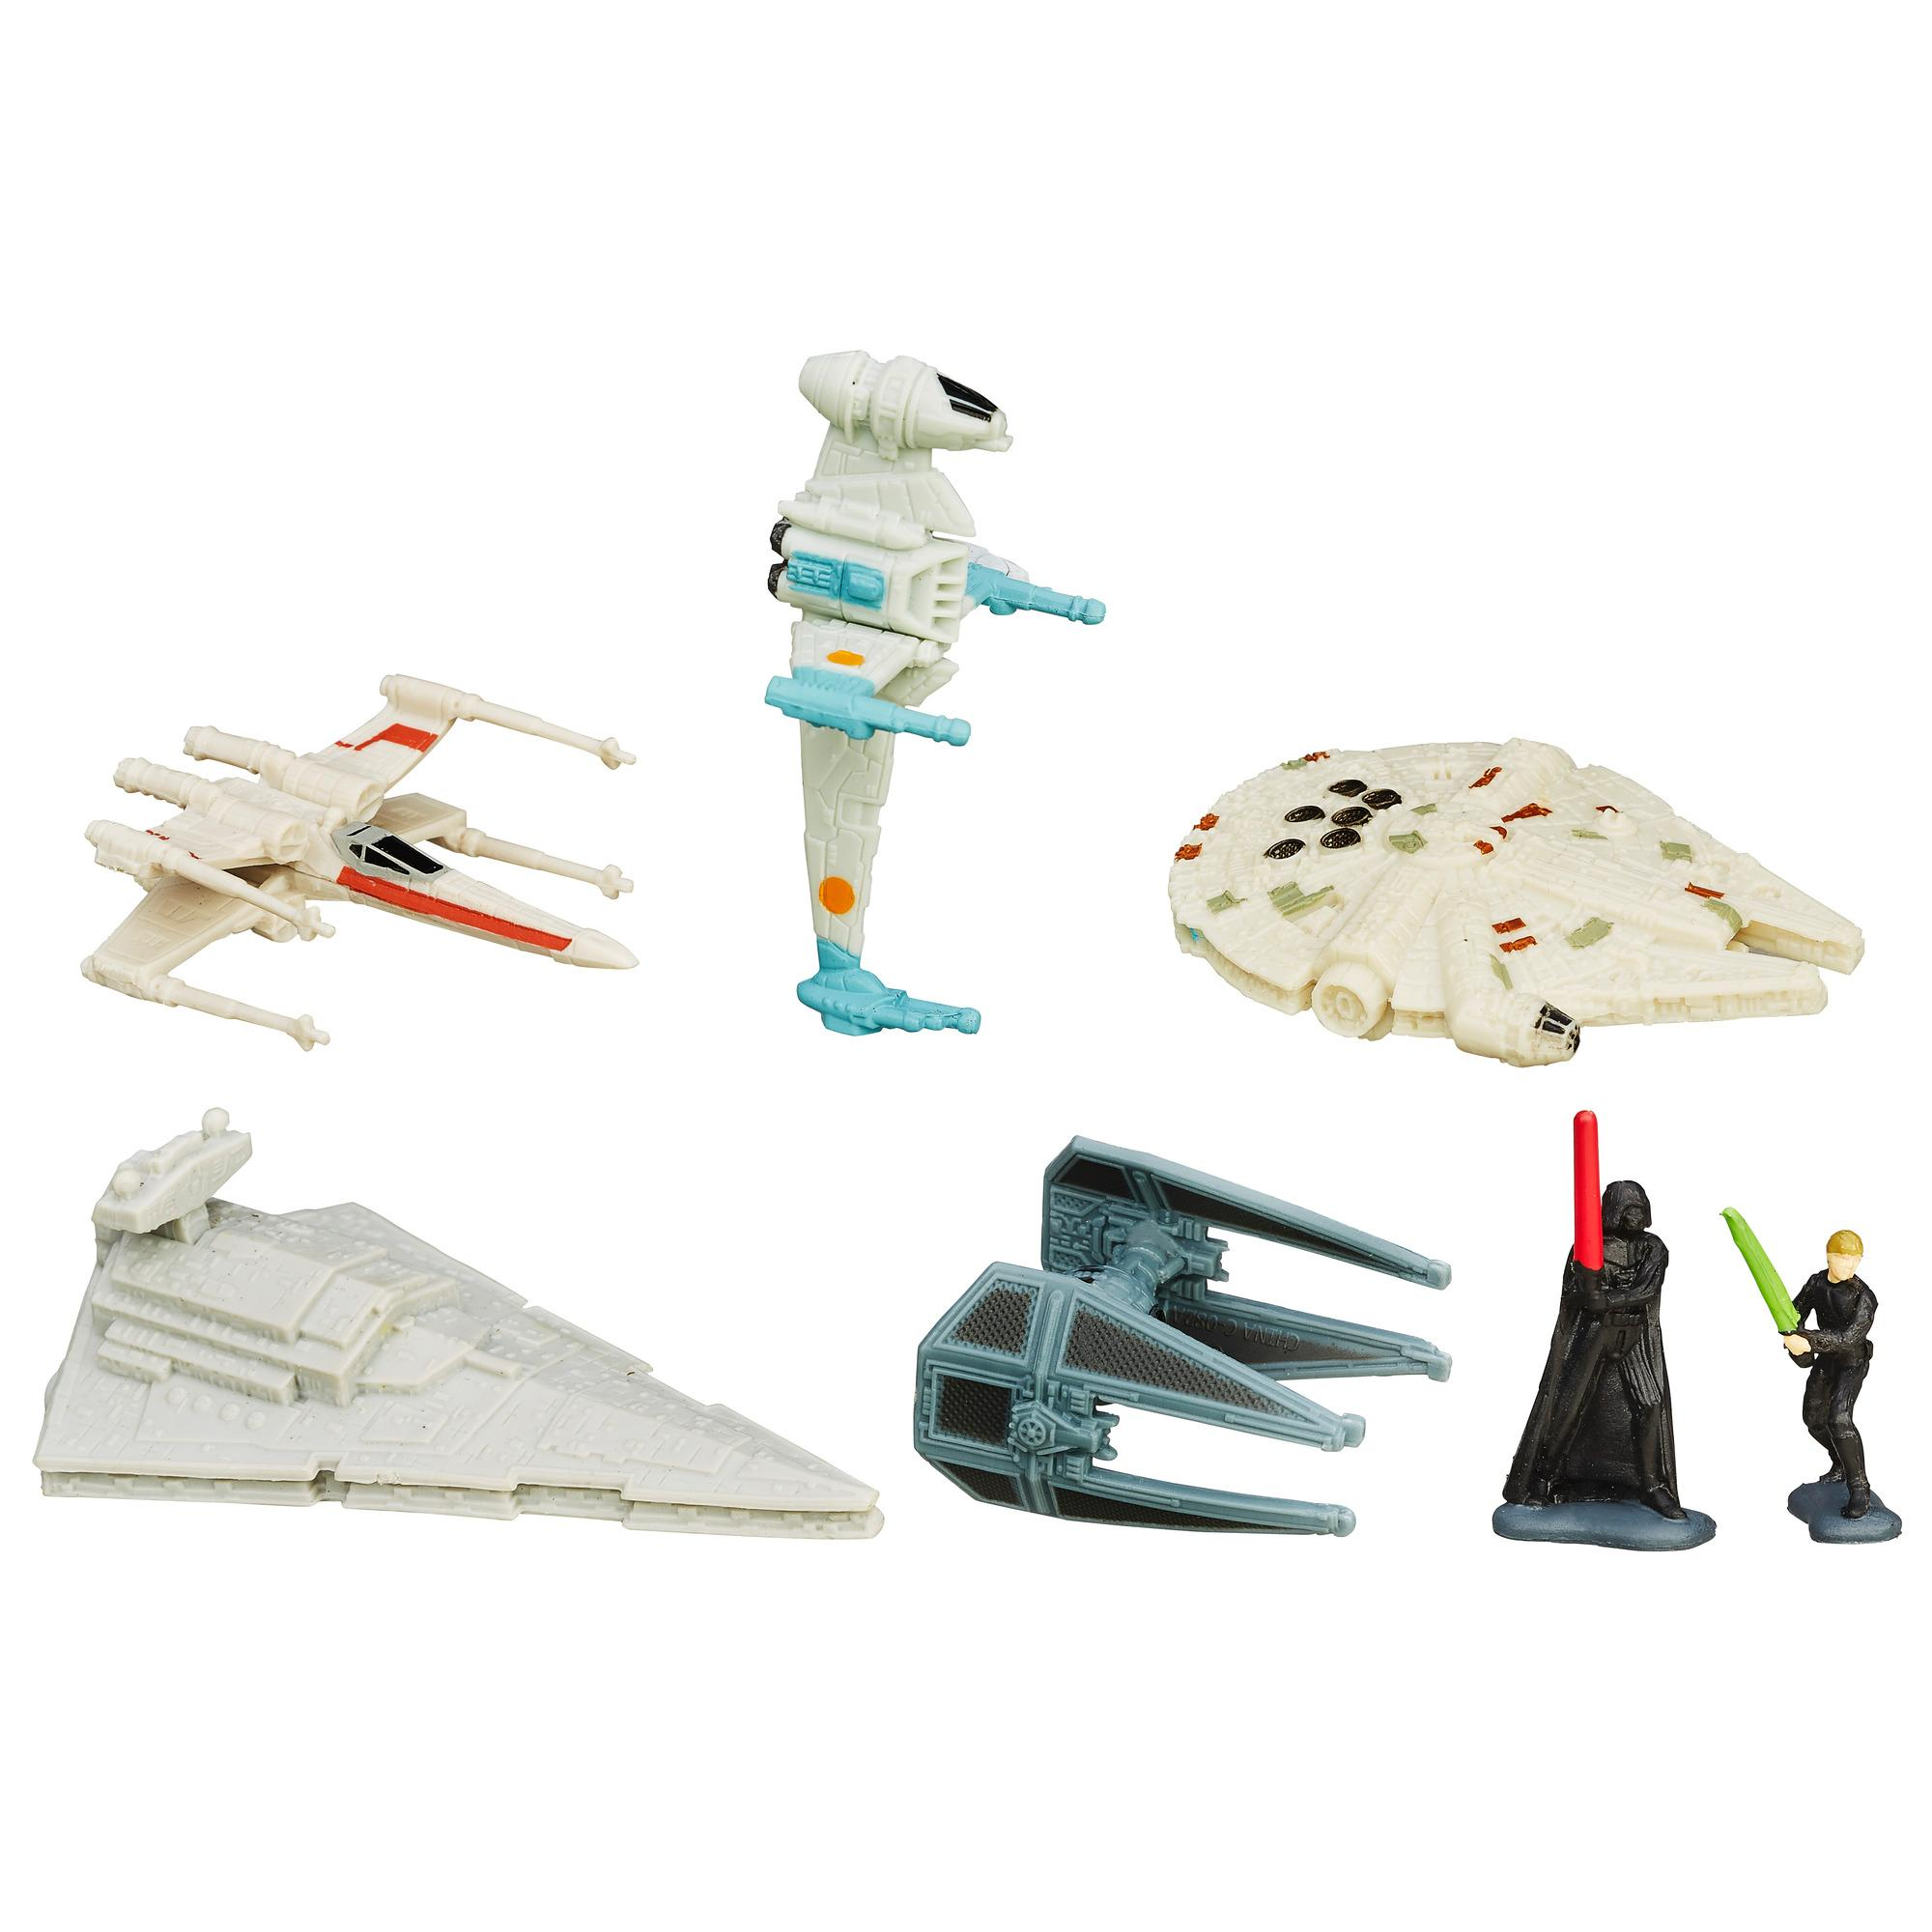 Star Wars Return of the Jedi Micro Machines Deluxe Vehicle Pack Fall of the Empire